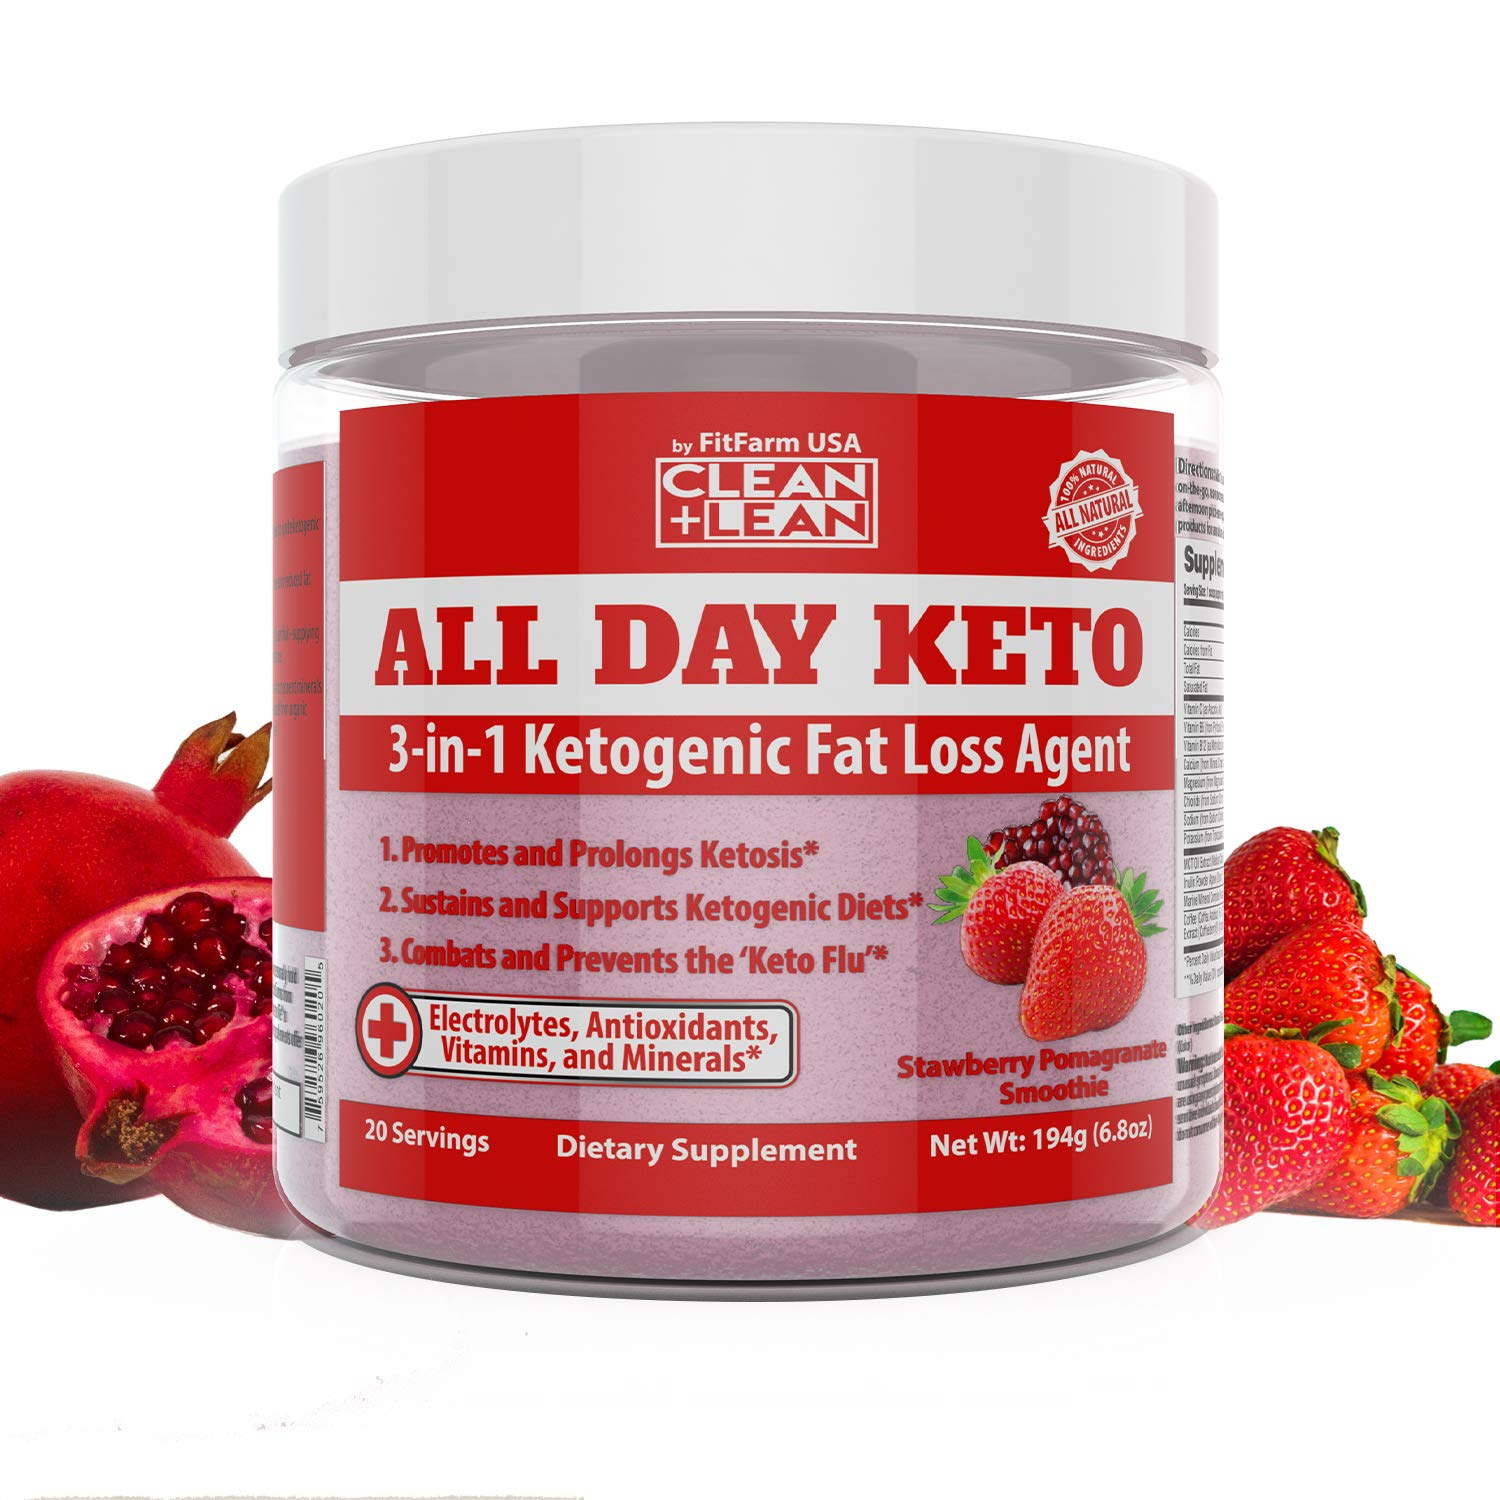 All Day Keto 3-in-1 Ketogenic Fat Loss Agent-Ignite Ketosis, Propel Your Keto Diet & Combat Keto Flu | MCT+Prebiotic+Electrolytes+Organic Energy & Mineral Complex|All Natural Gluten Free & Delicious! by FIT FARM USA